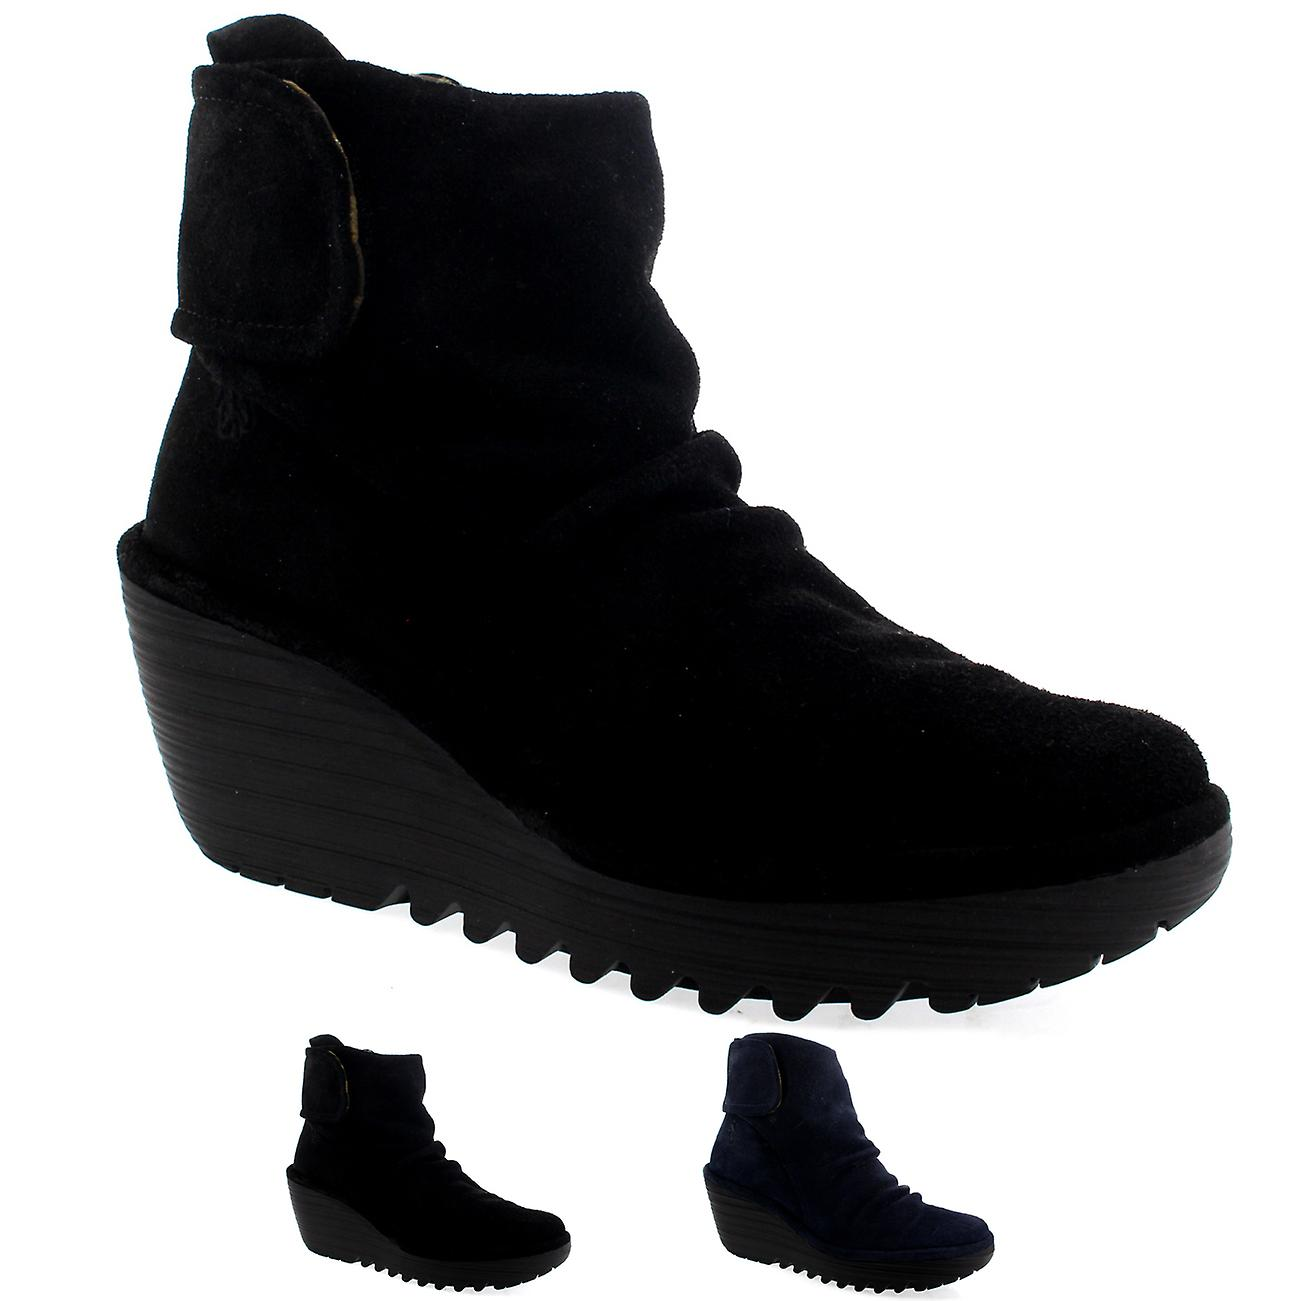 0bc5c56ad77c2 Womens Fly London Yegi Wedge Heel Suede Velcro Casual Winter Ankle Boots